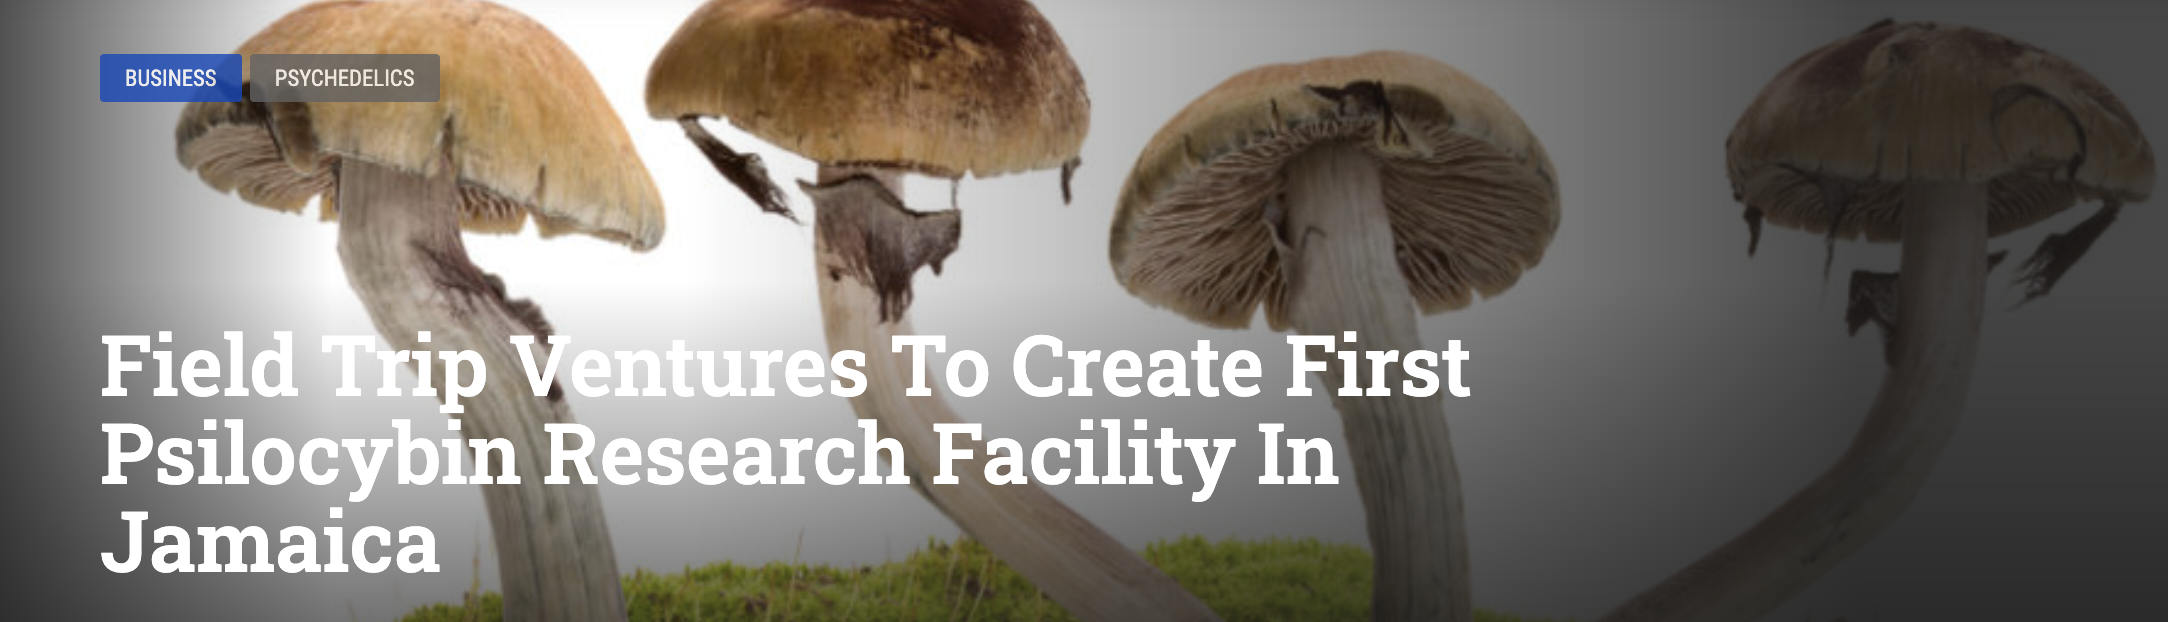 Field Trip Ventures to Create First Psilocybin Research Facility in Jamaica